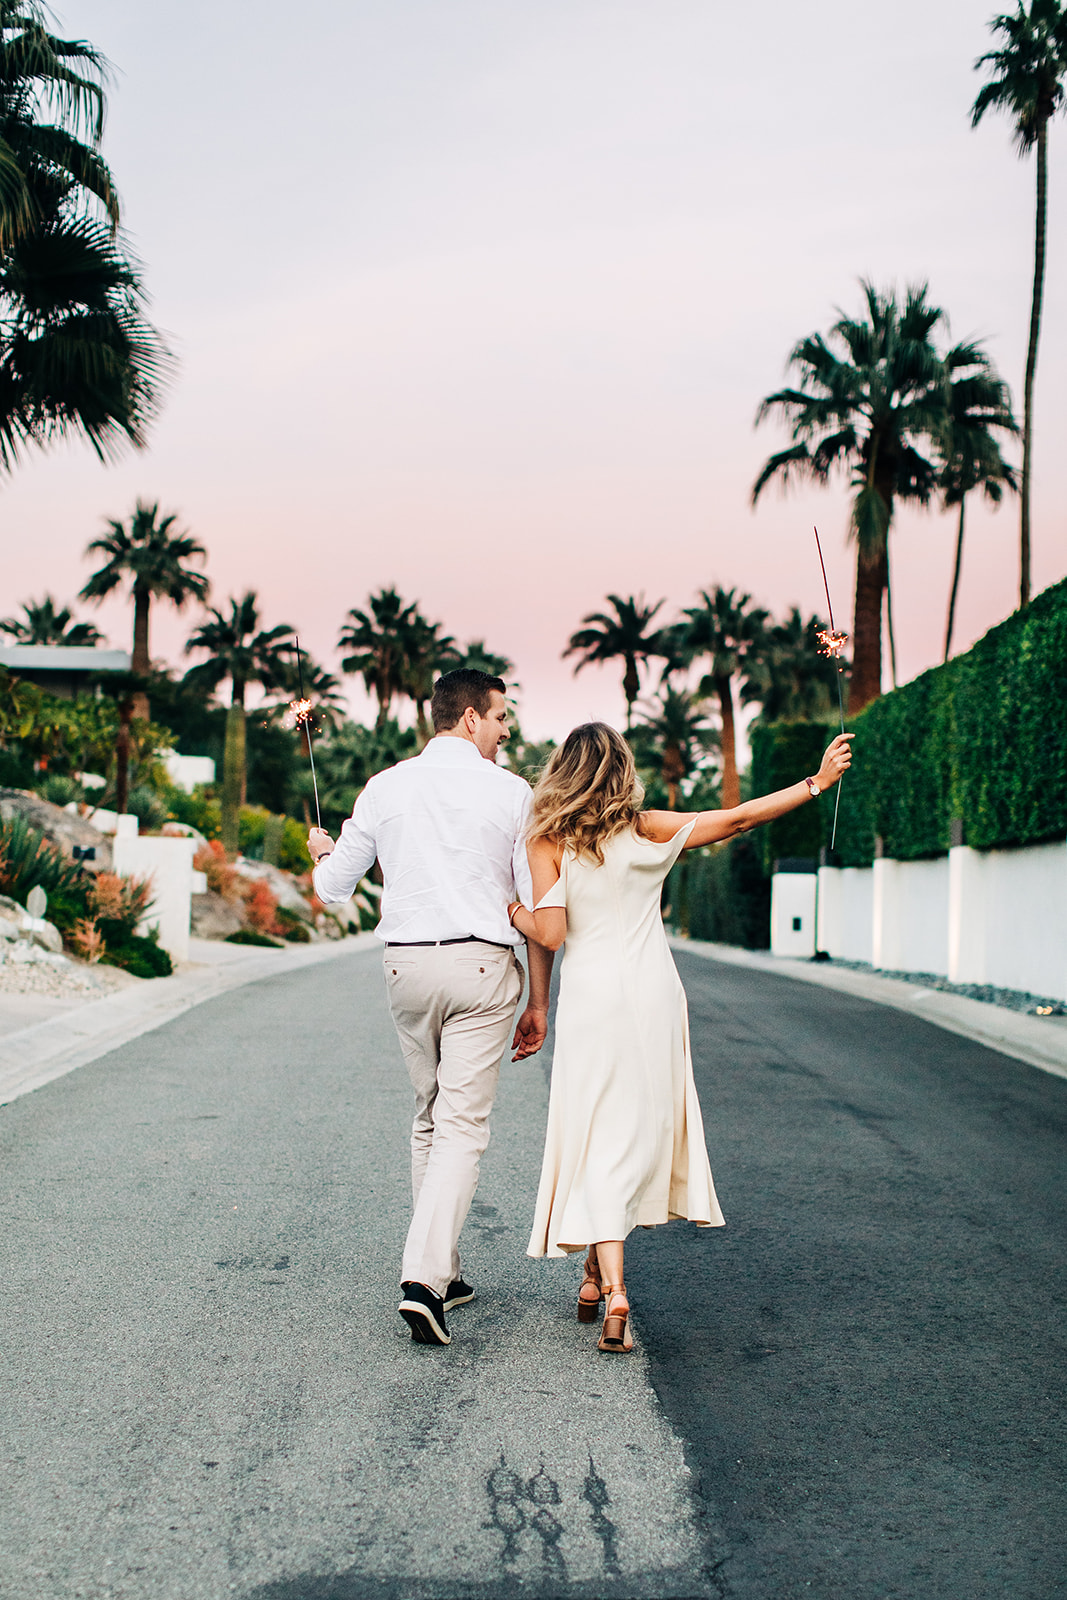 Paulina-Drew_Palm-Springs-Engagement-Photos_Clarisse-Rae_Southern-California-Wedding-Photographer-58